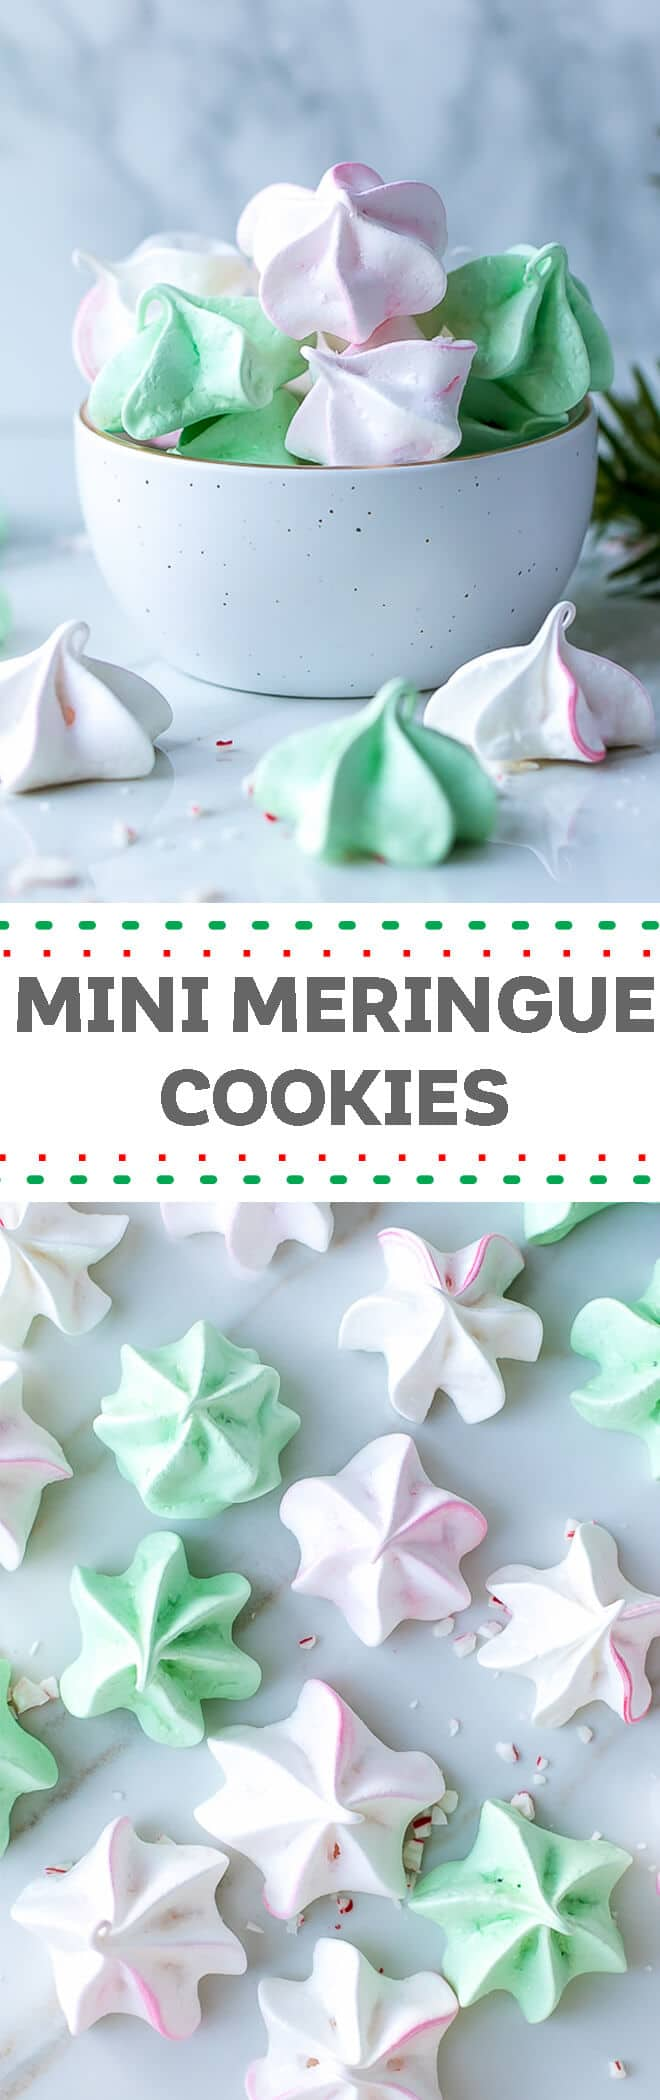 Mini Meringue Cookies Recipe - cute, festive and elegant, perfect for celebration. These mini meringue cookies are made for Christmas, colored in pink and light green, great for topping cakes and other desserts and the perfect addition to any holiday cookie platter.